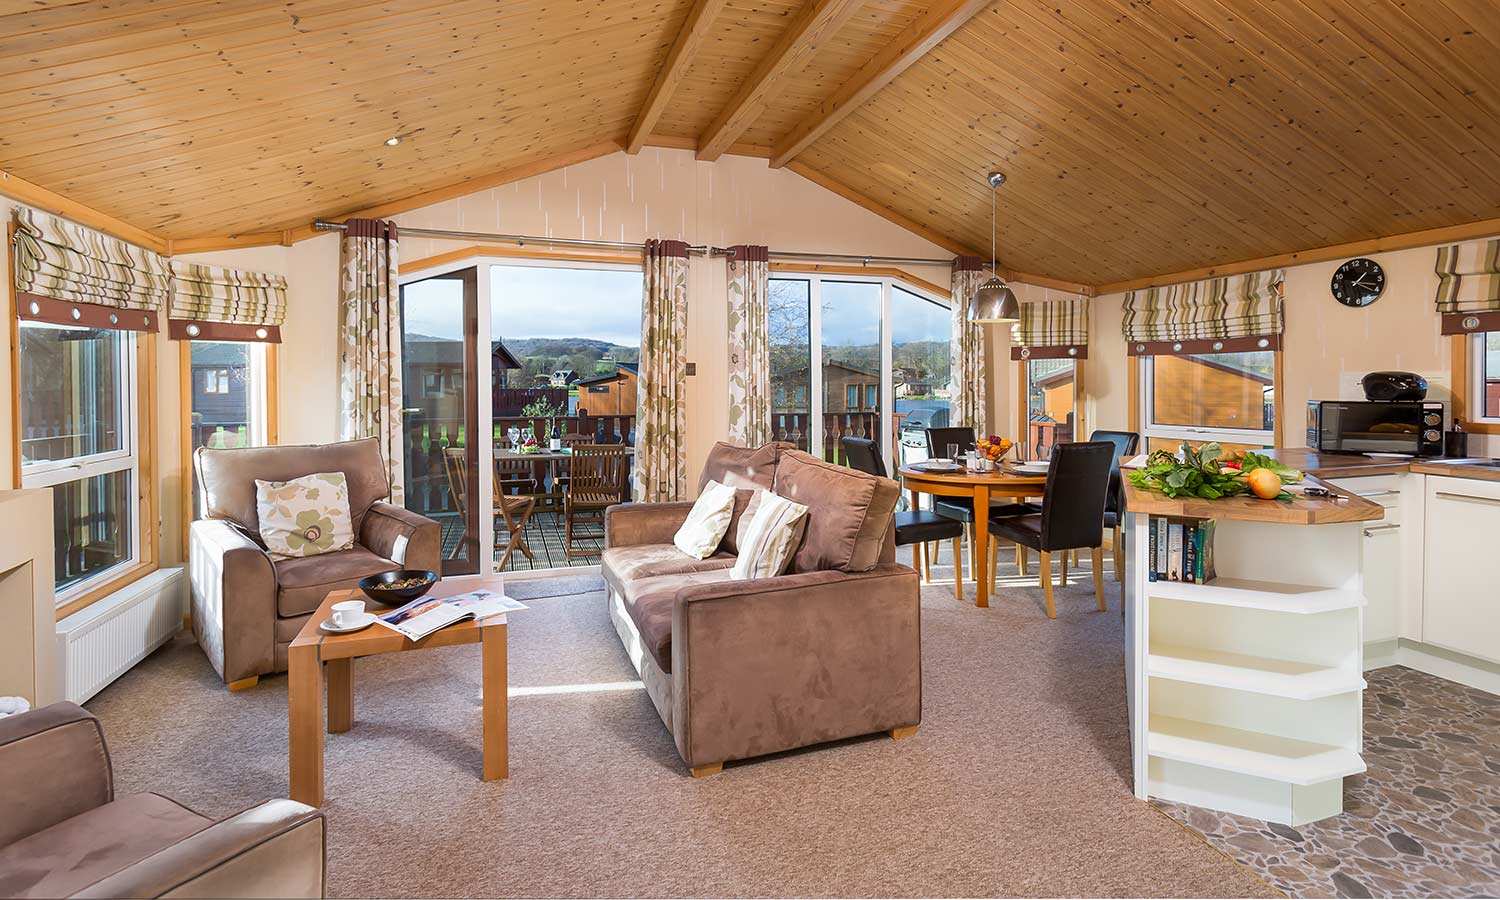 Crag-View-Lodge-Lake-Lodges-1